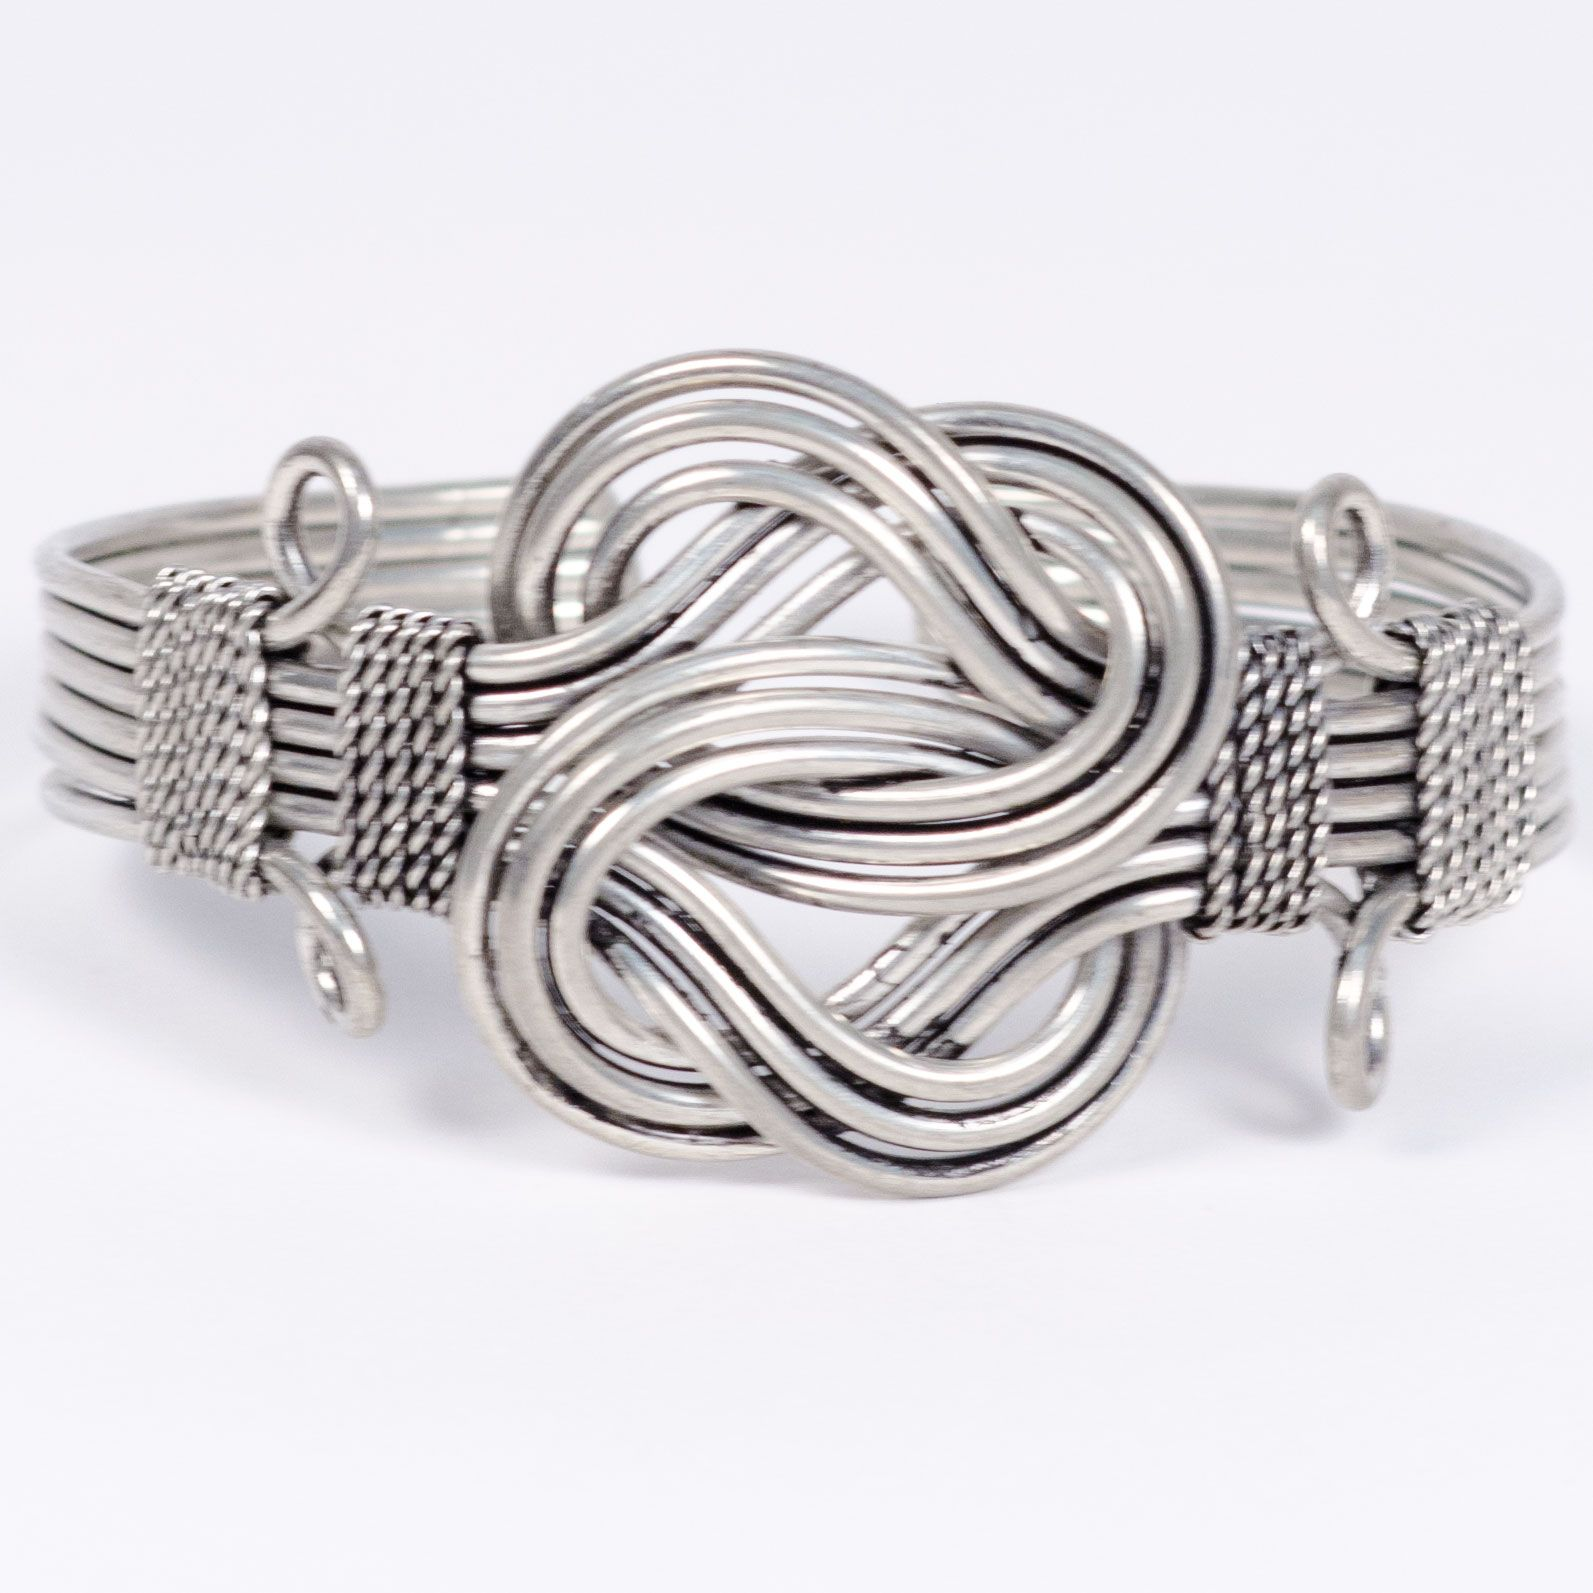 Silver plated brass cuff cute and decorative and goes